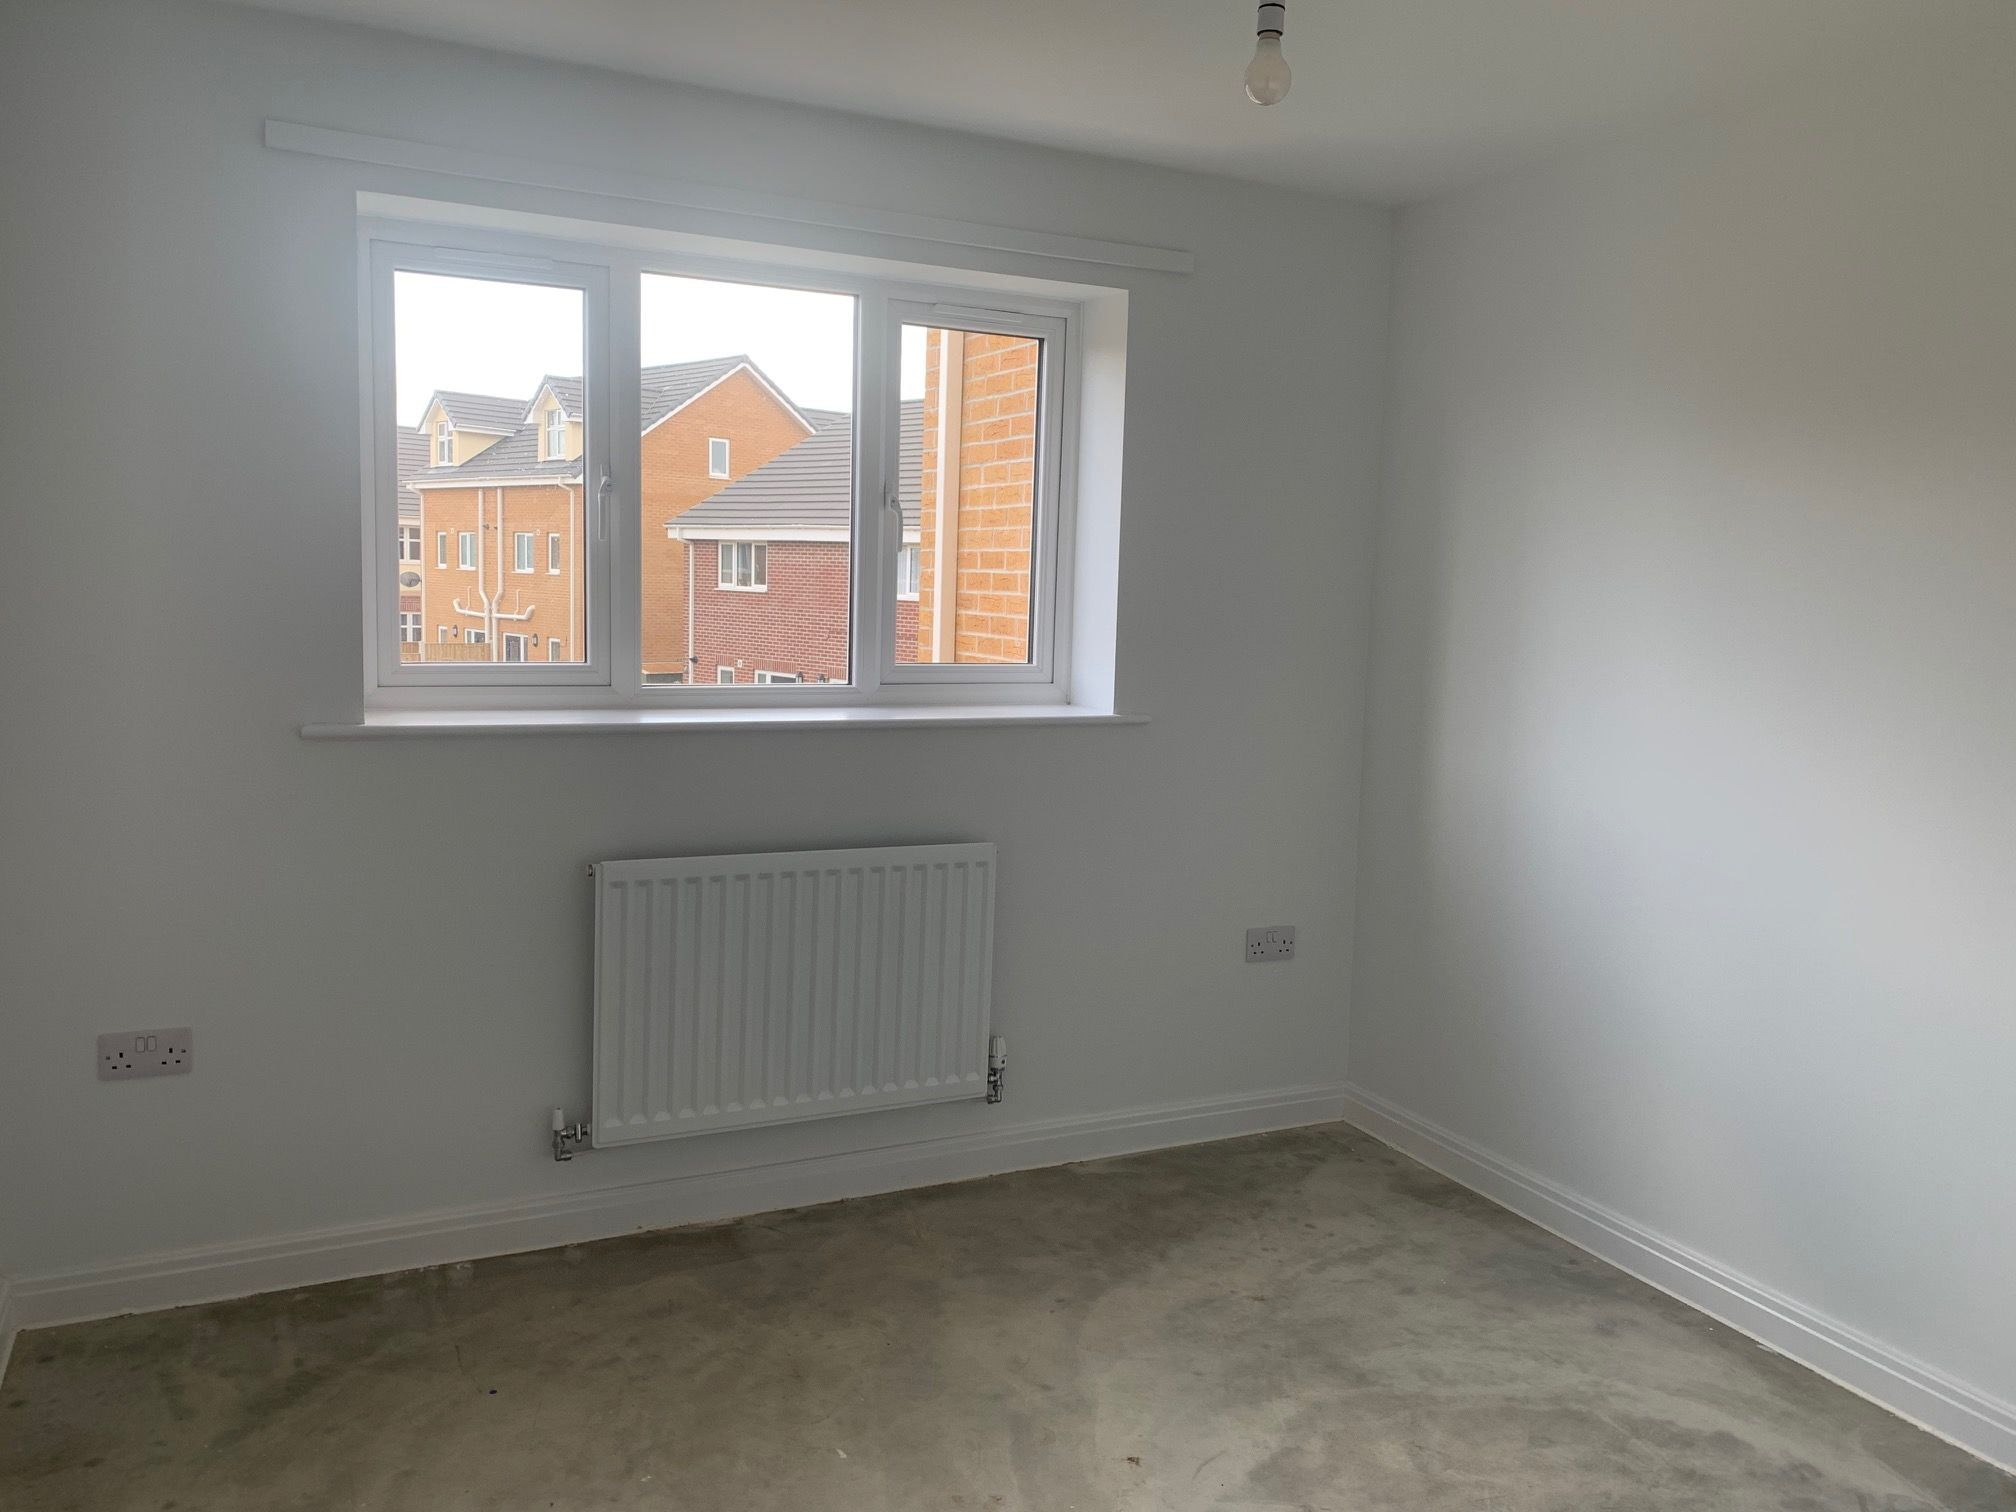 2 bedroom flat flat/apartment Let in Manchester - Photograph 4.